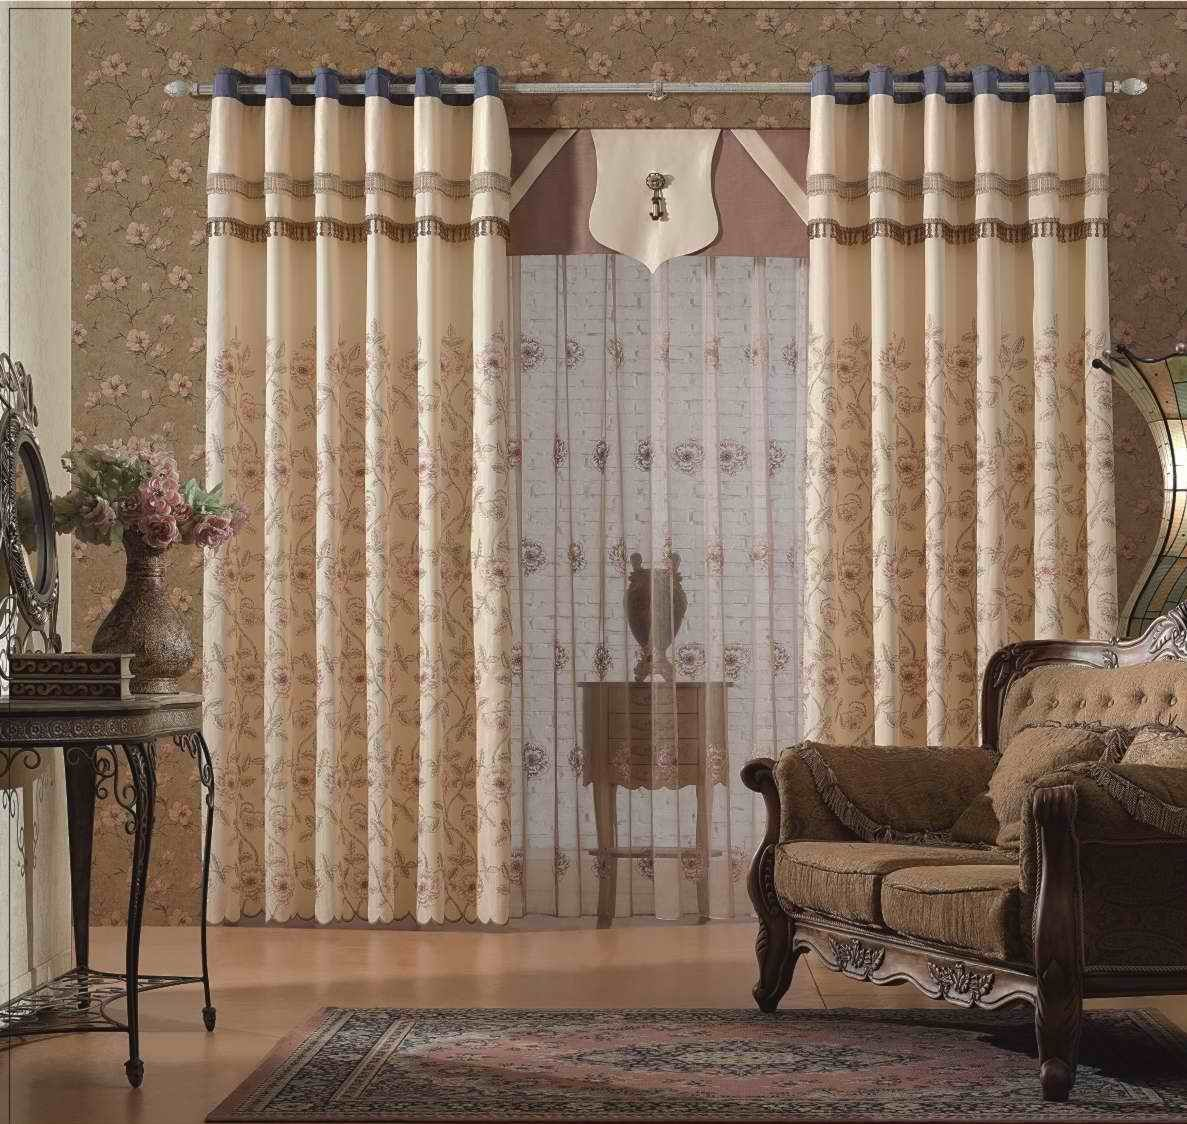 Pleasing Spiffy Living Curtain Ideas With Eyelet Heading For Luxury Livingroom  Decoration Ideas And Amusing Pattern Nice Design